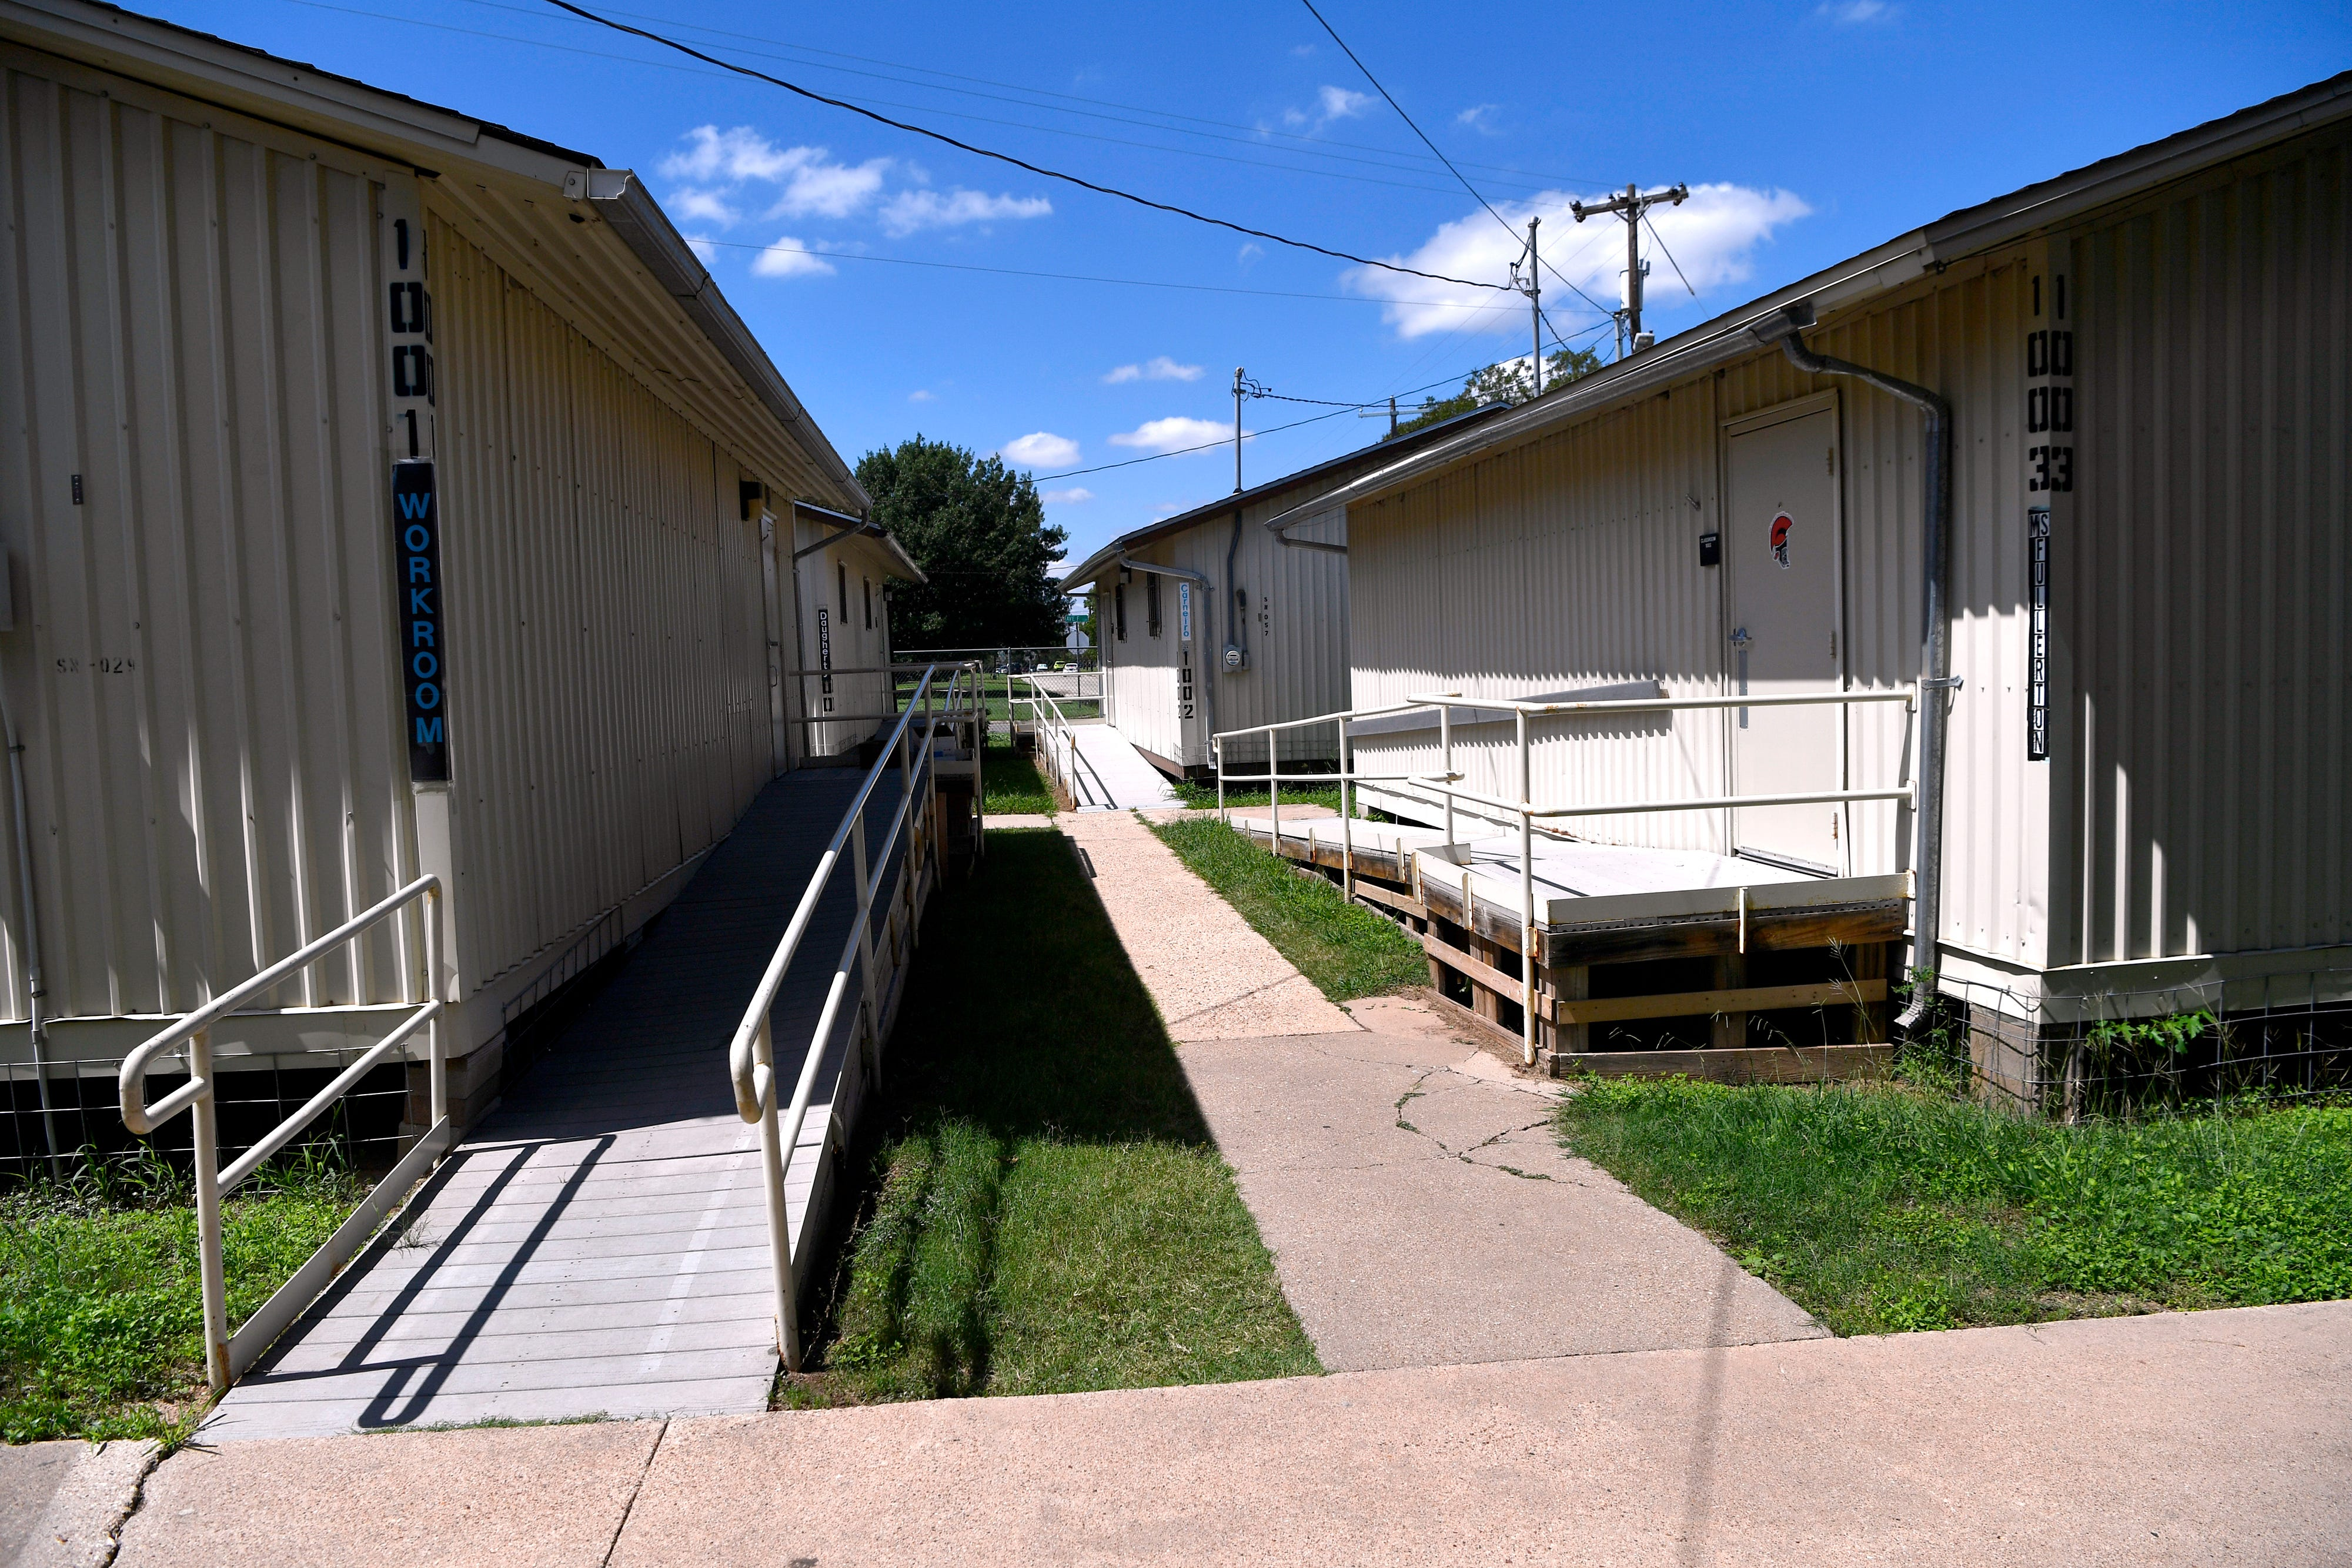 Taylor Elementary School has eleven portable buildings, four of which are pictured here.